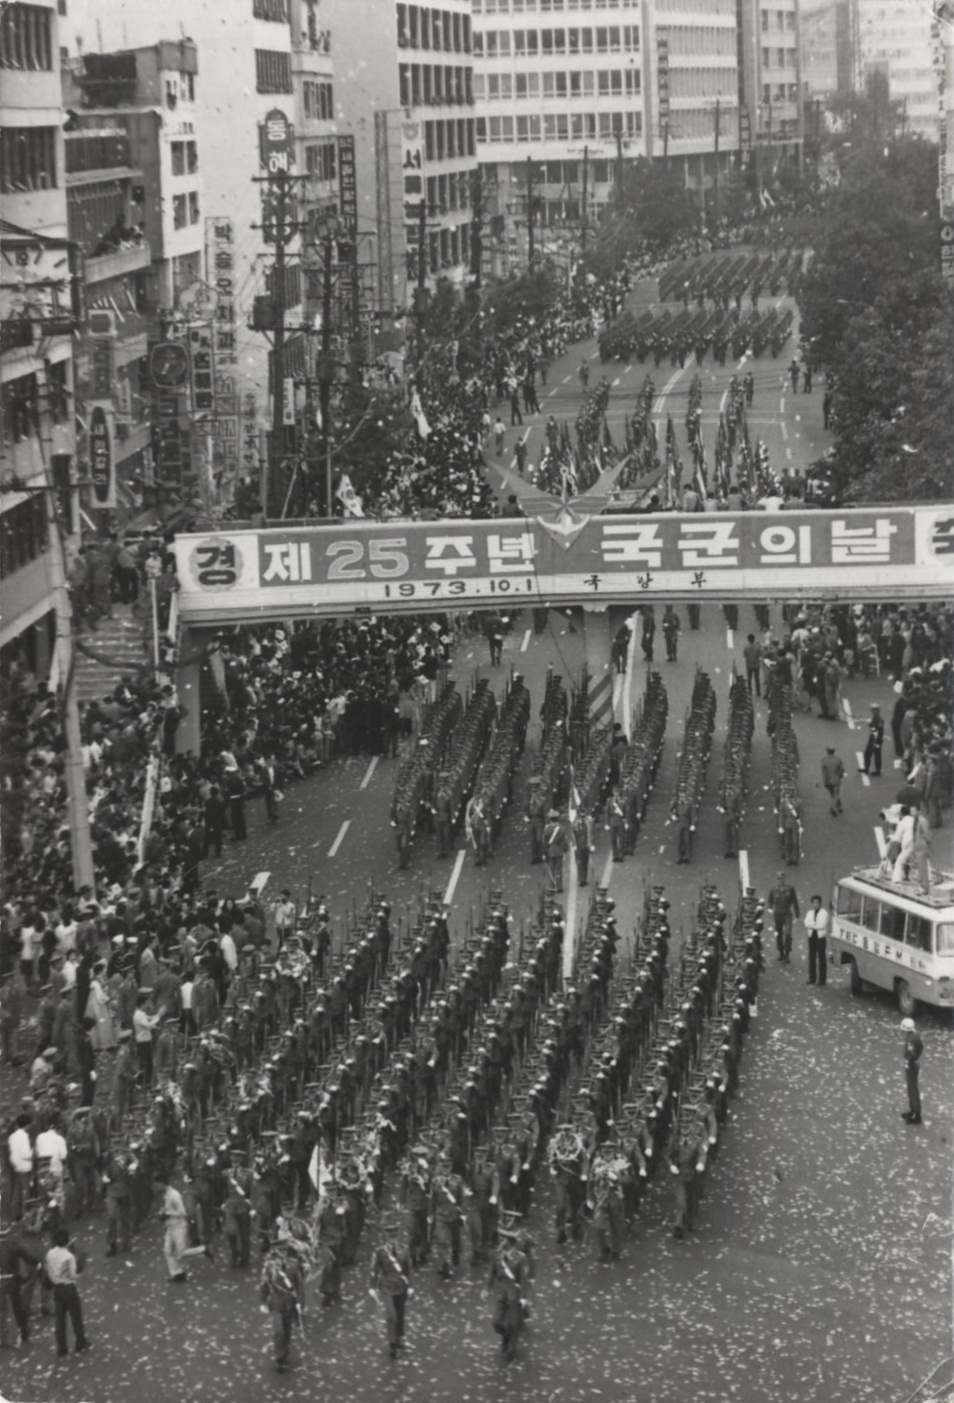 filearmed forces day of south korea 1973 6jpg